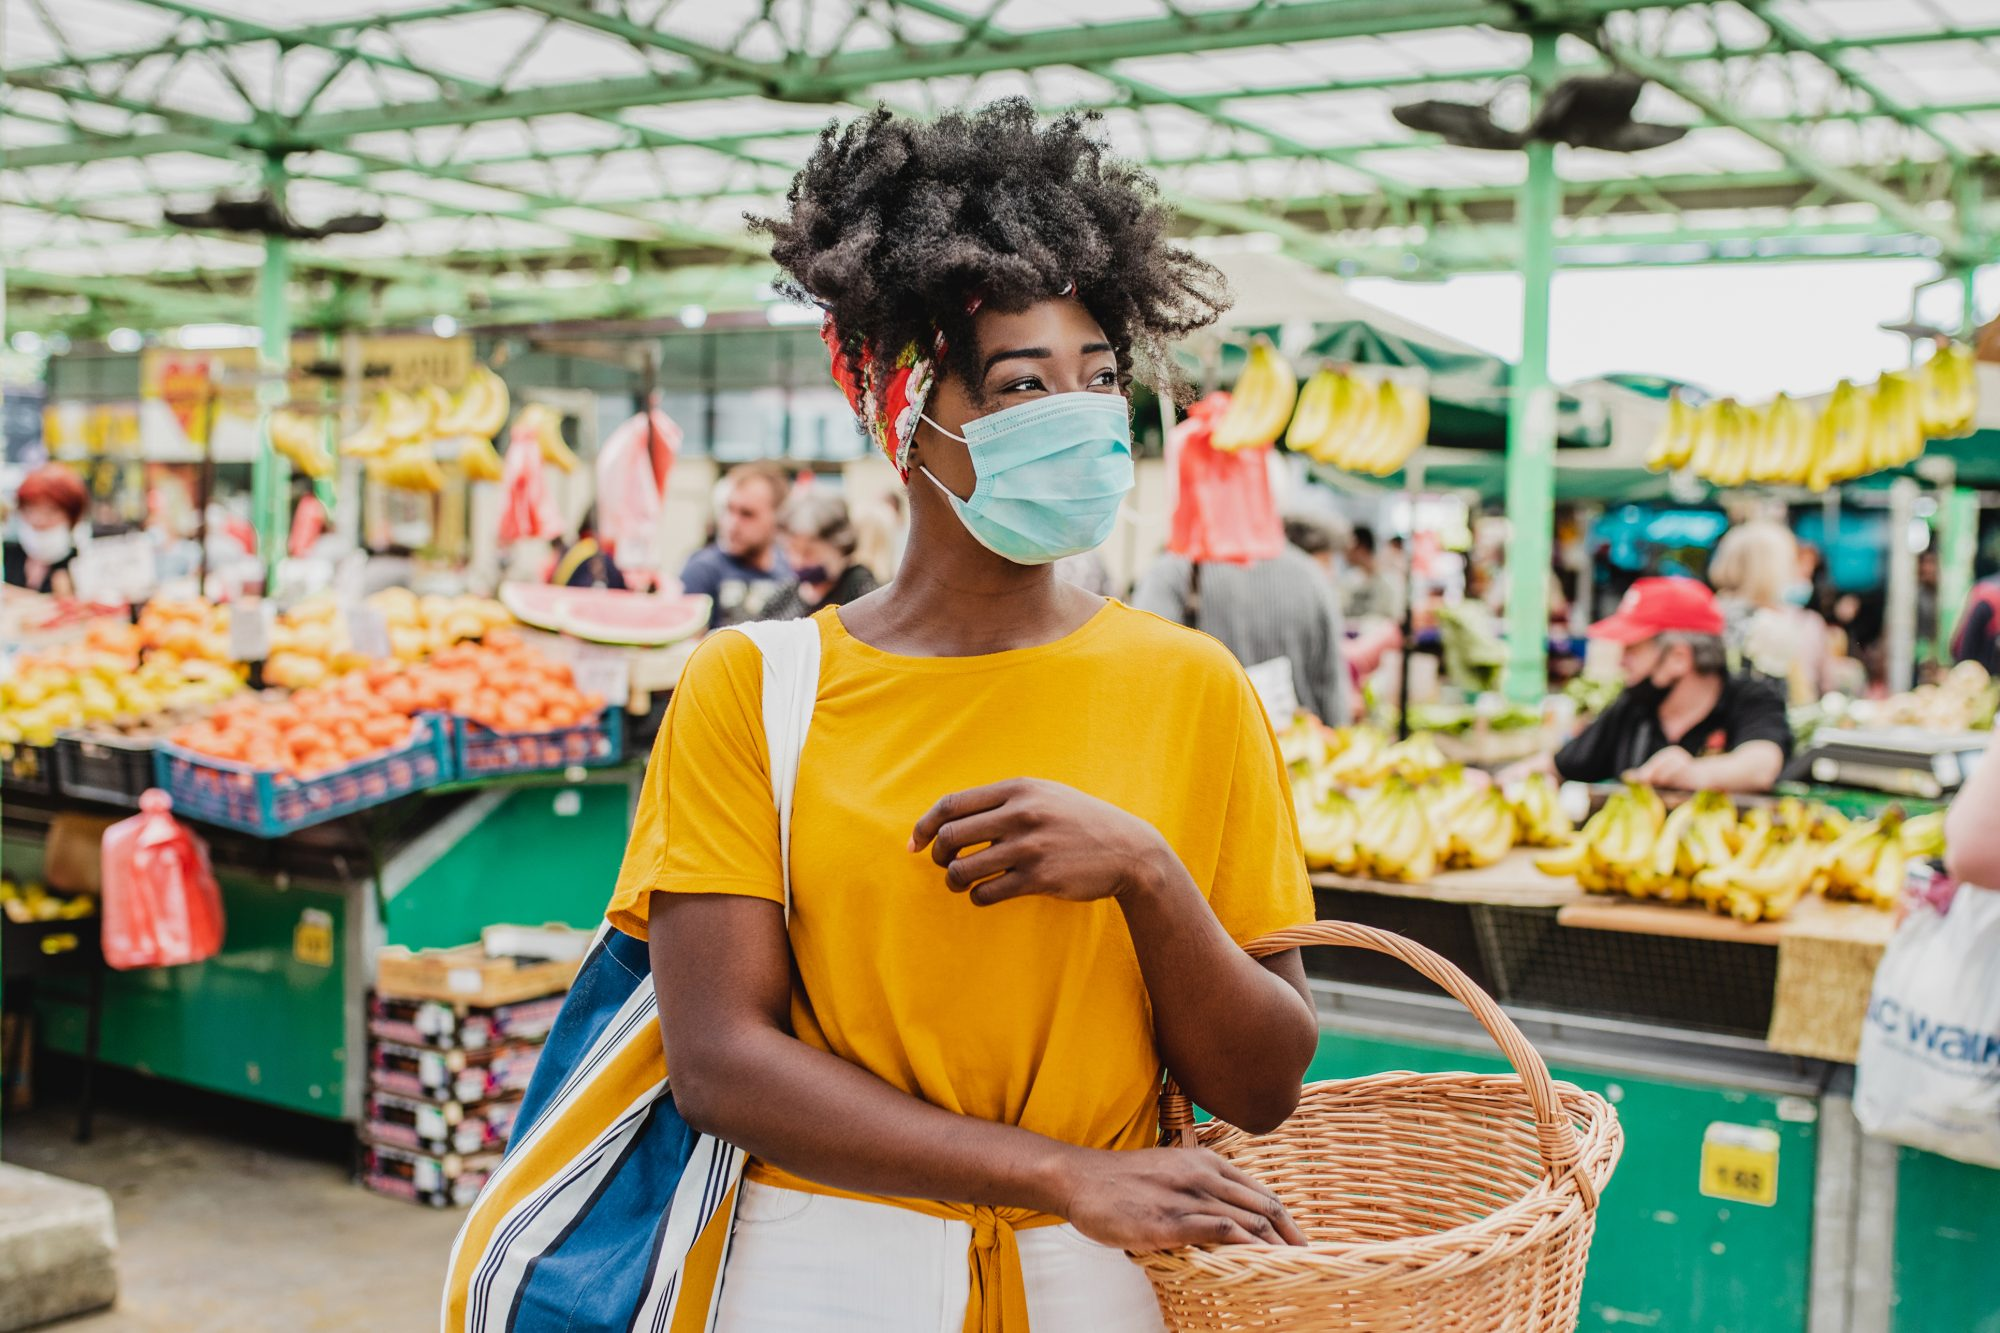 How to shop at farmers markets during coronavirus - woman shopping at market with mask